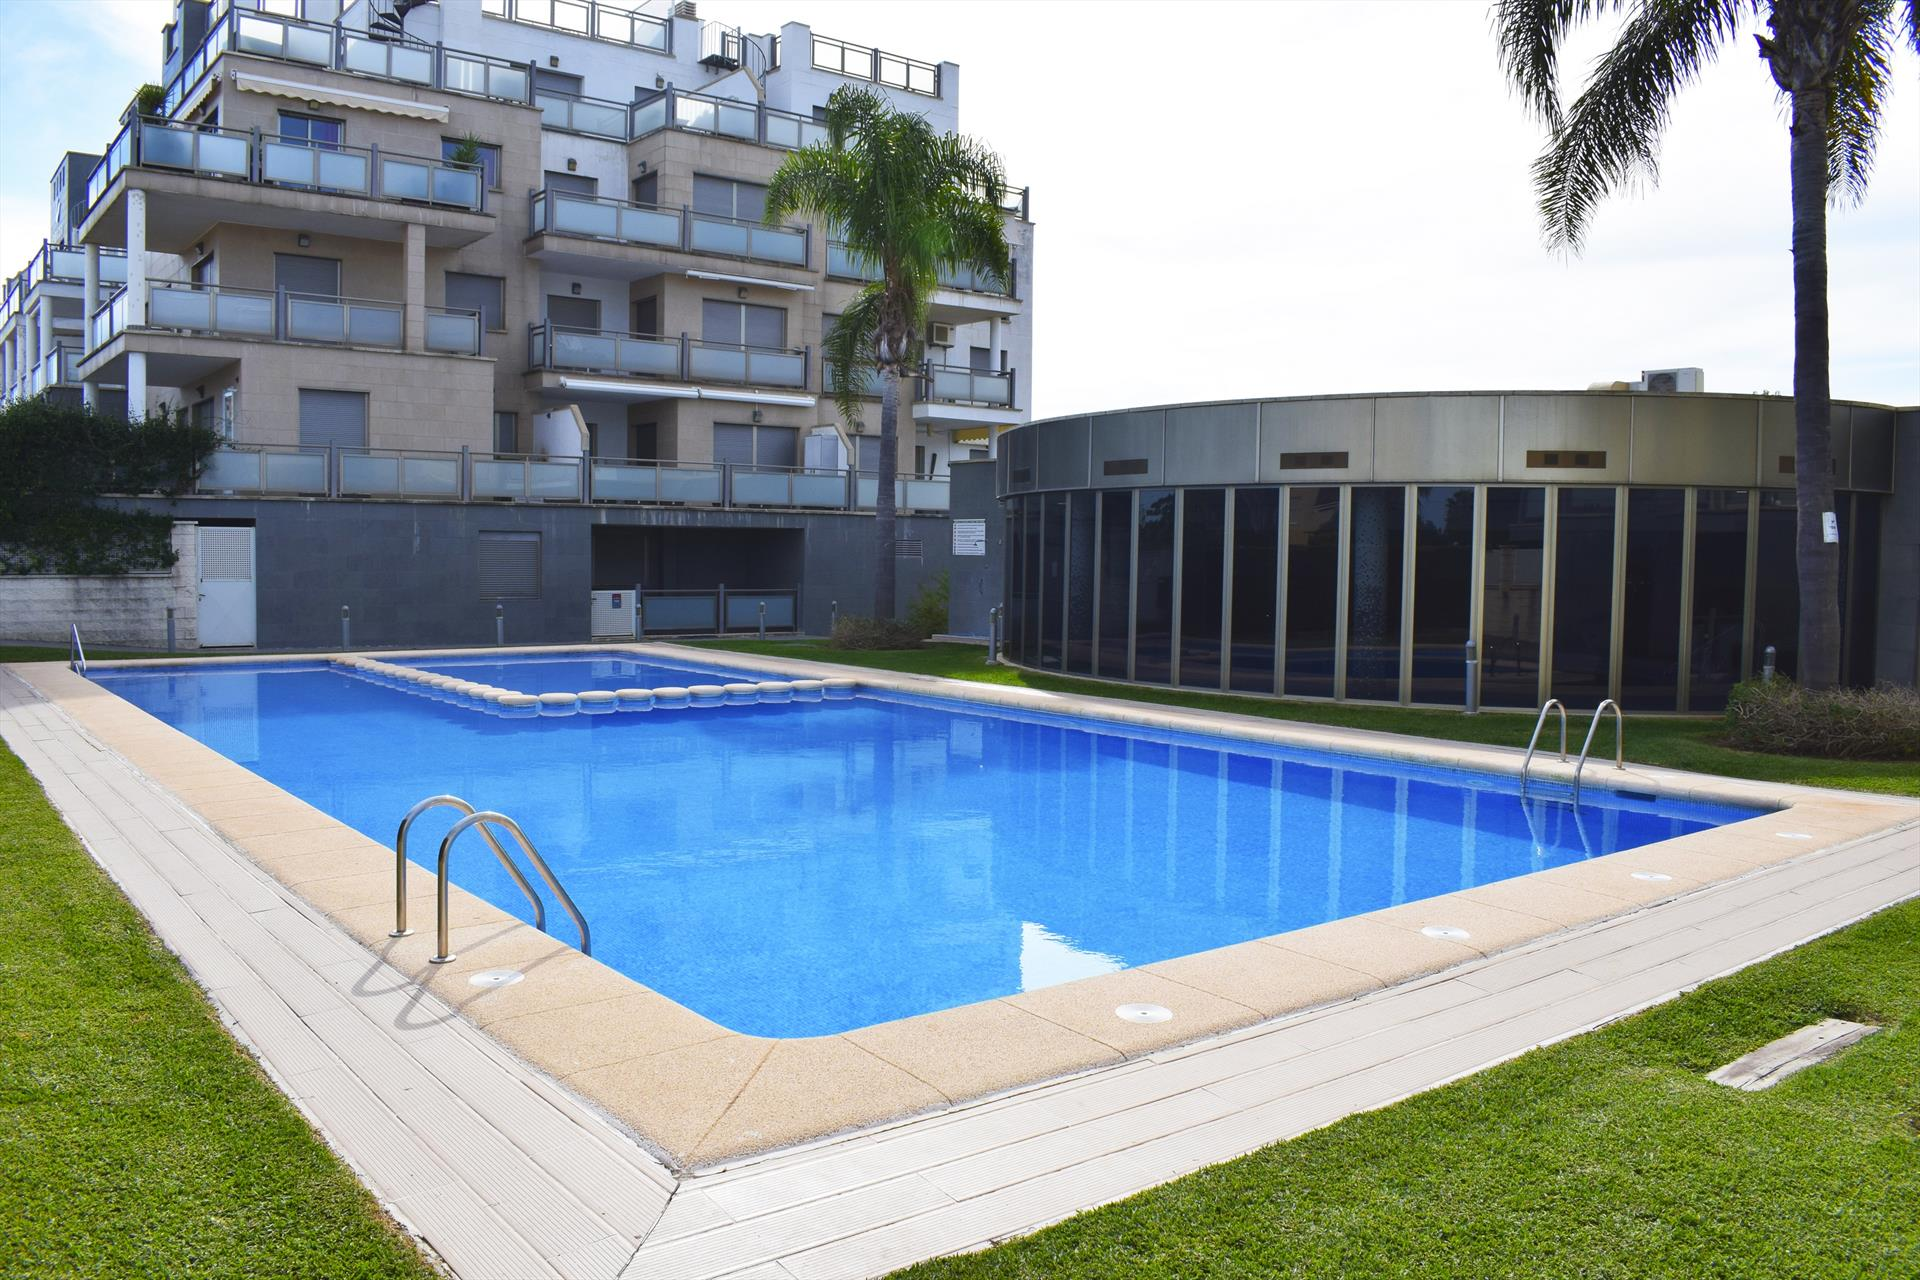 Cabagua Oliva Nova AP560,Beautiful and cheerful apartment  with communal pool in Oliva, on the Costa Blanca, Spain for 5 persons.....